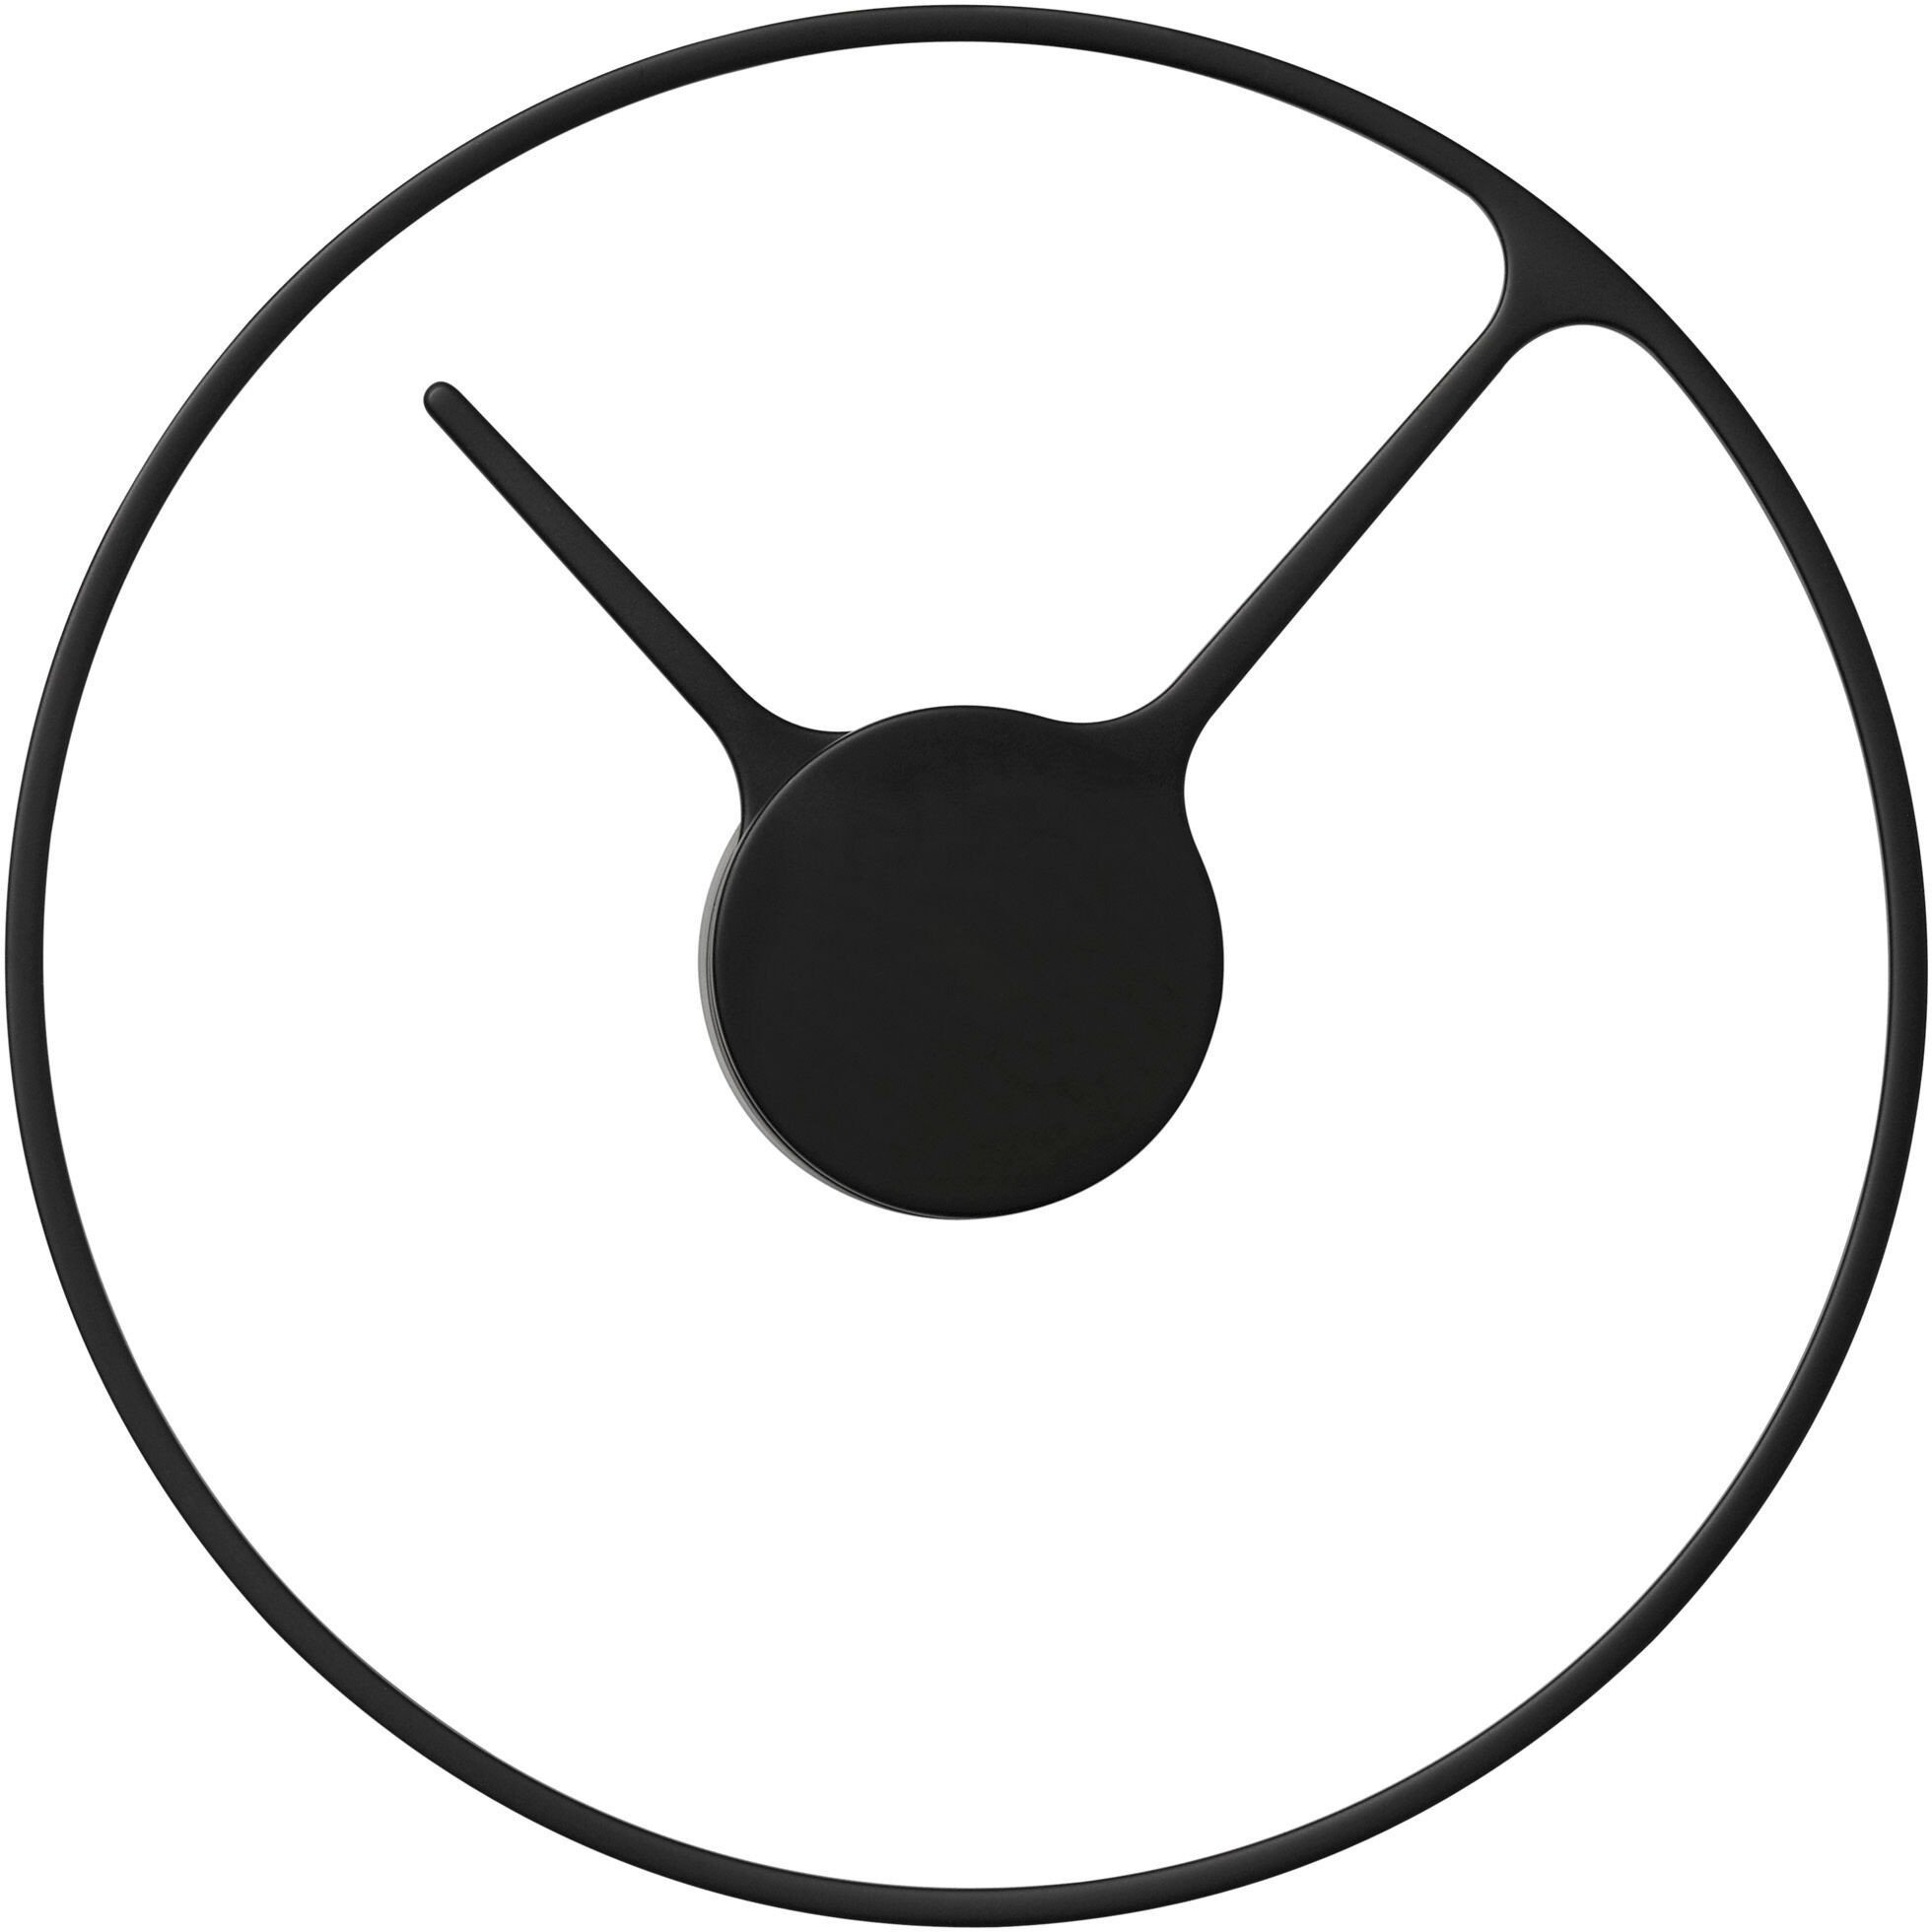 Stelton Time Wall Clock Black M by Jehs+Laub for Stelton